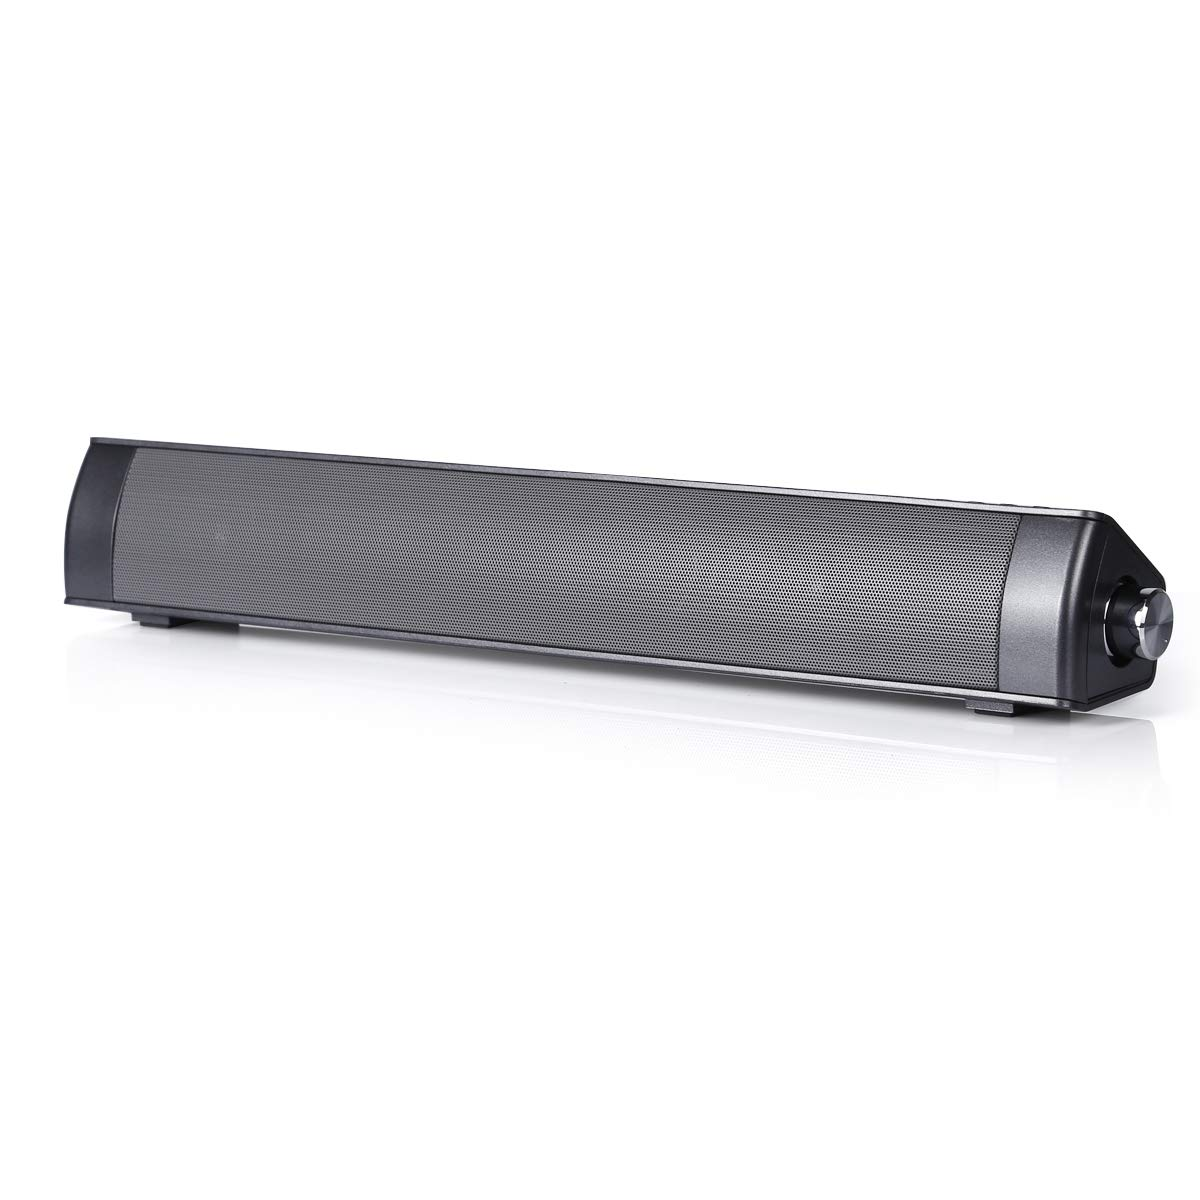 VICOODA Mini Bluetooth Soundbar Speaker with Aux-in, TF-Slot, USB Port, Wired and Wireless Speaker for TV, Notebook, PC, Mobile Phone, Tablet, MP3, Compatible with iPhone, Android, iPad